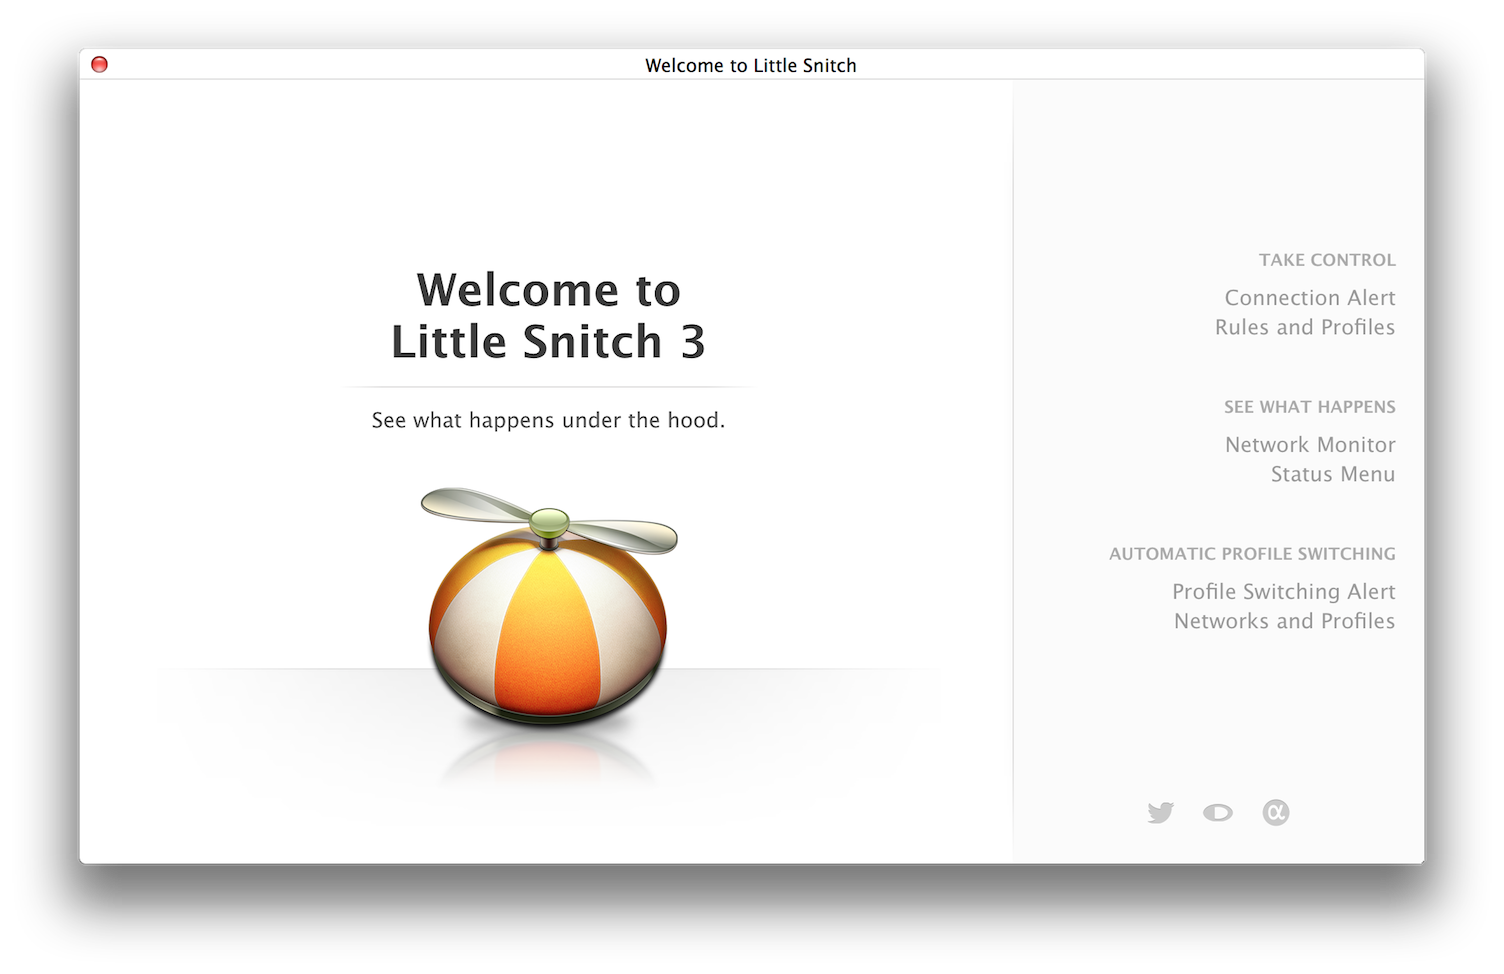 Little Snitch Welcome Window